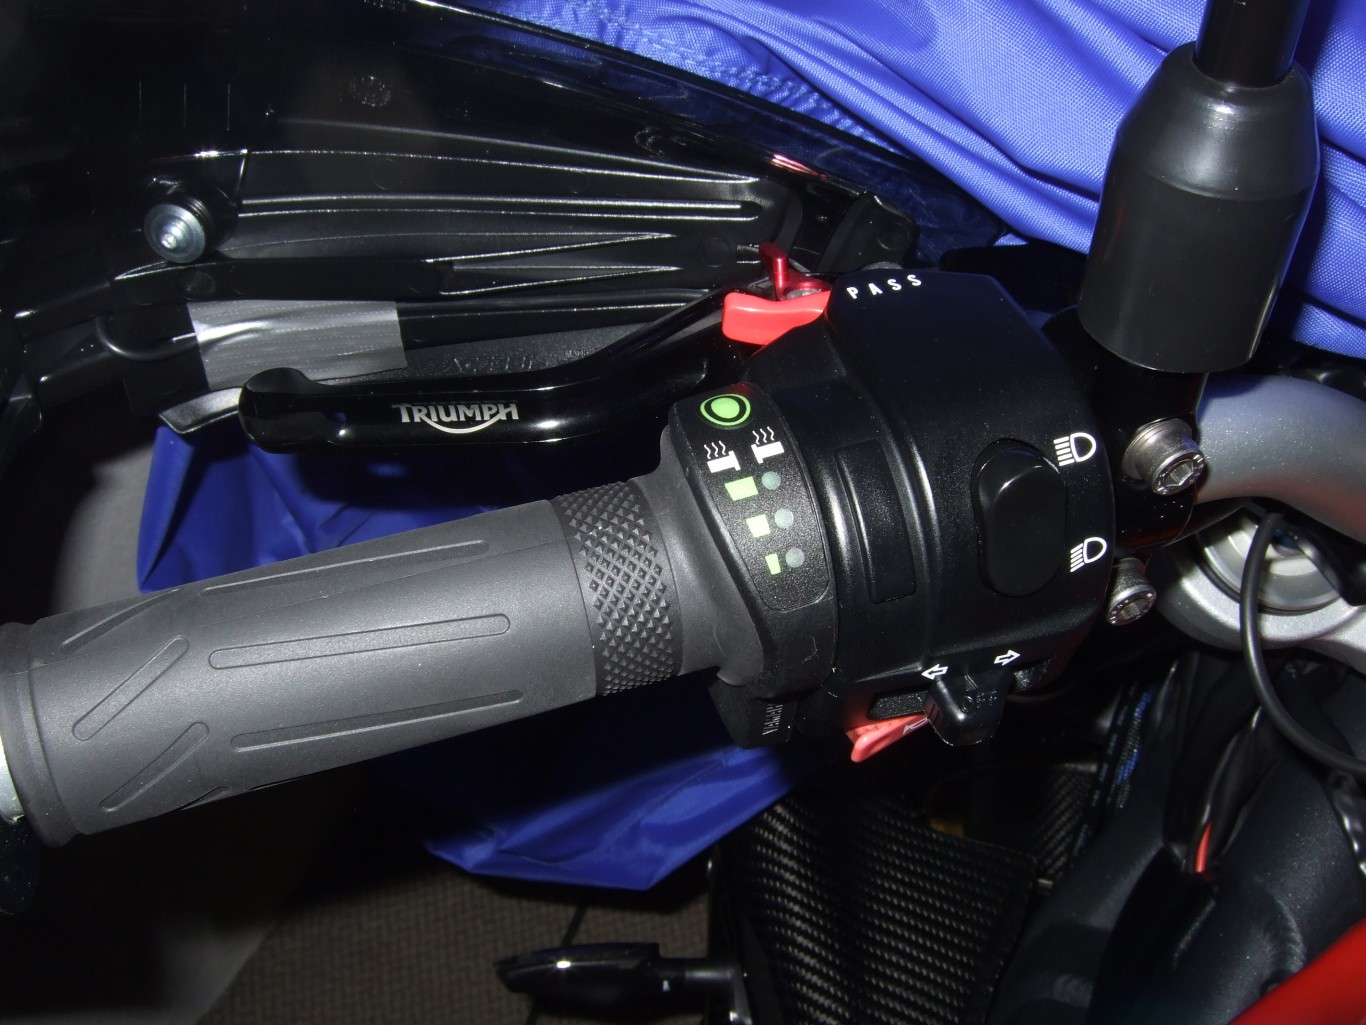 street triple seat cowl fitting instructions